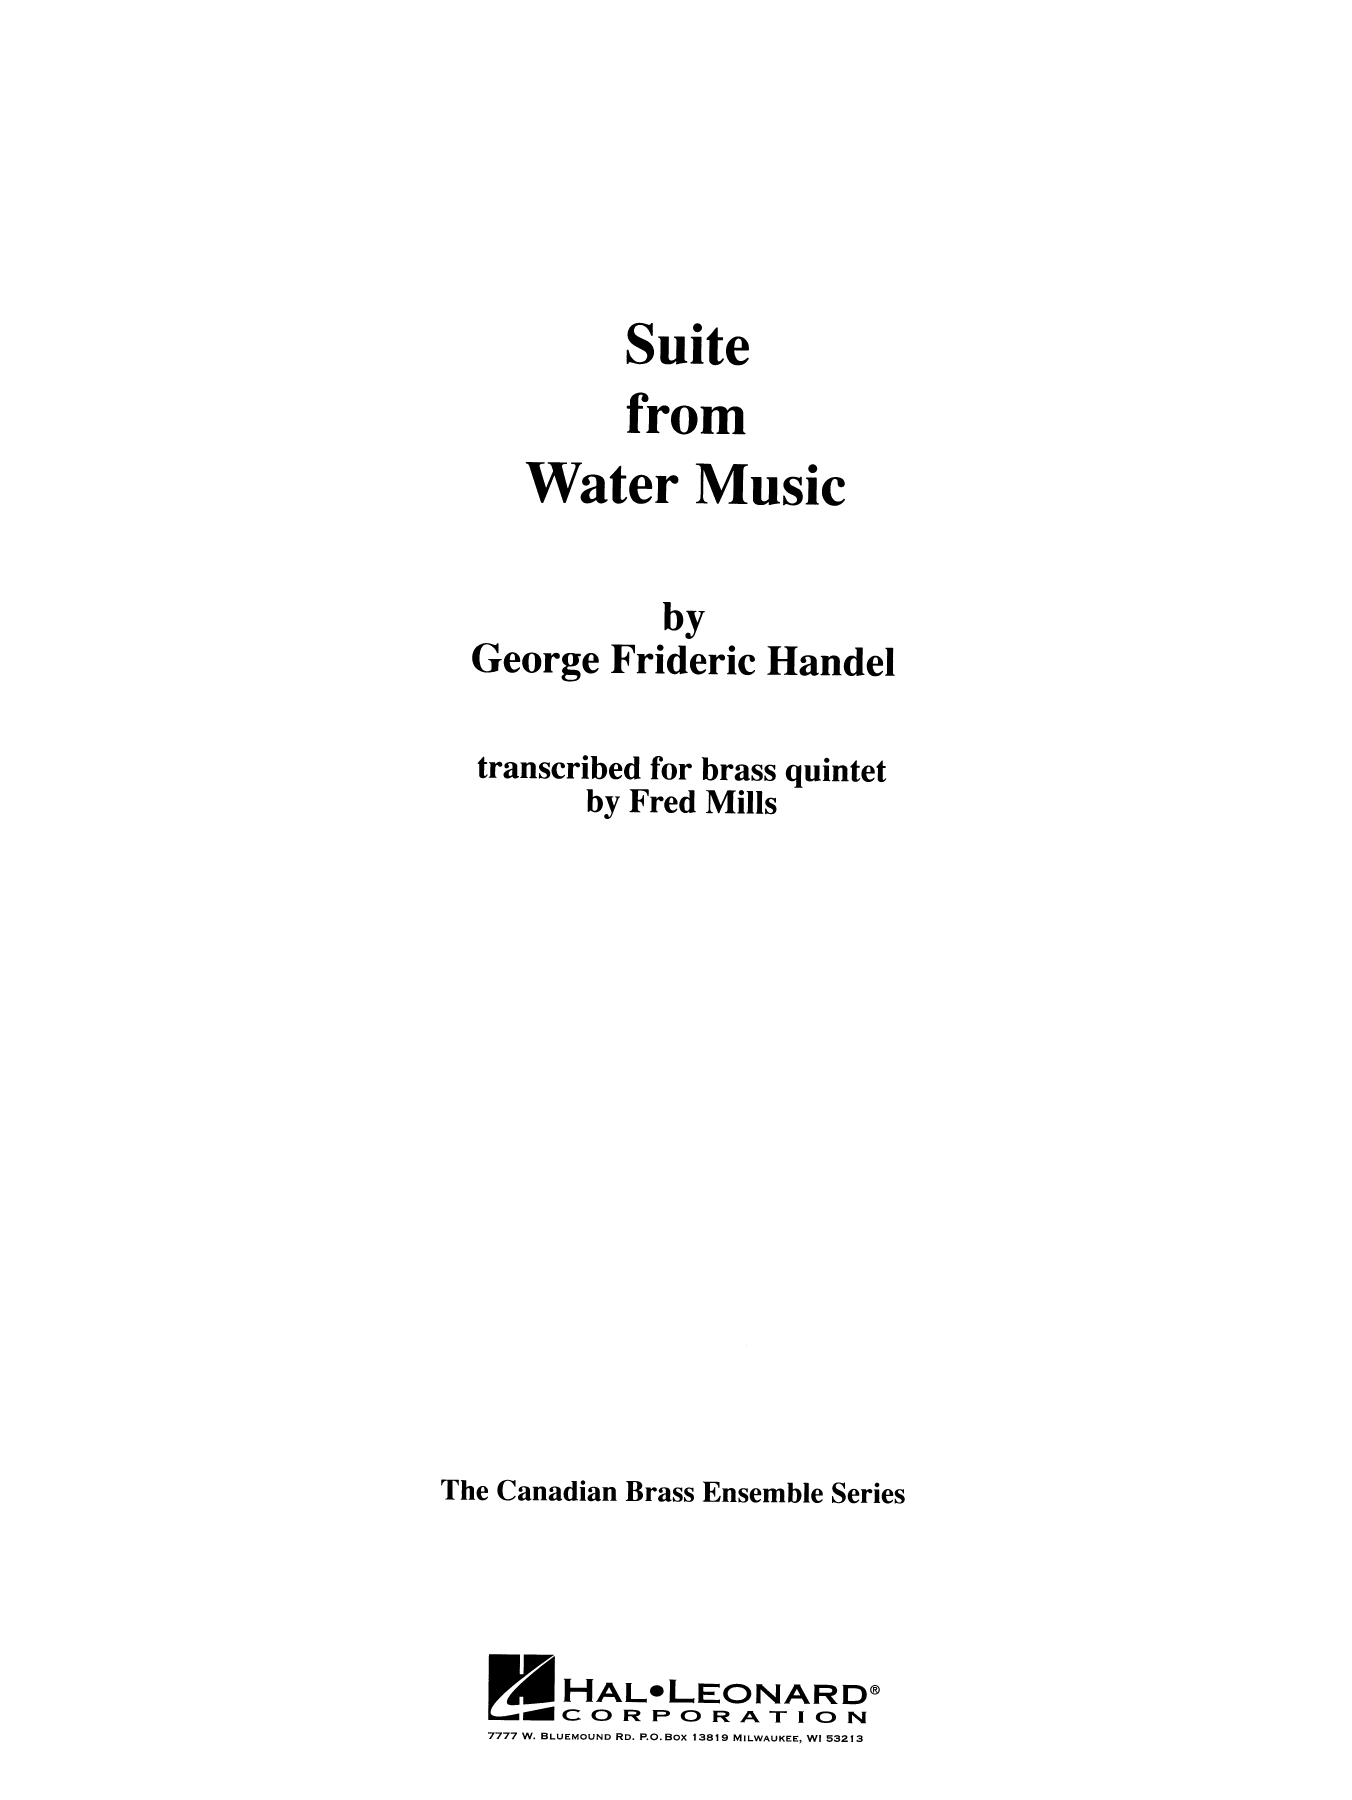 Suite from Water Music - Full Score Sheet Music